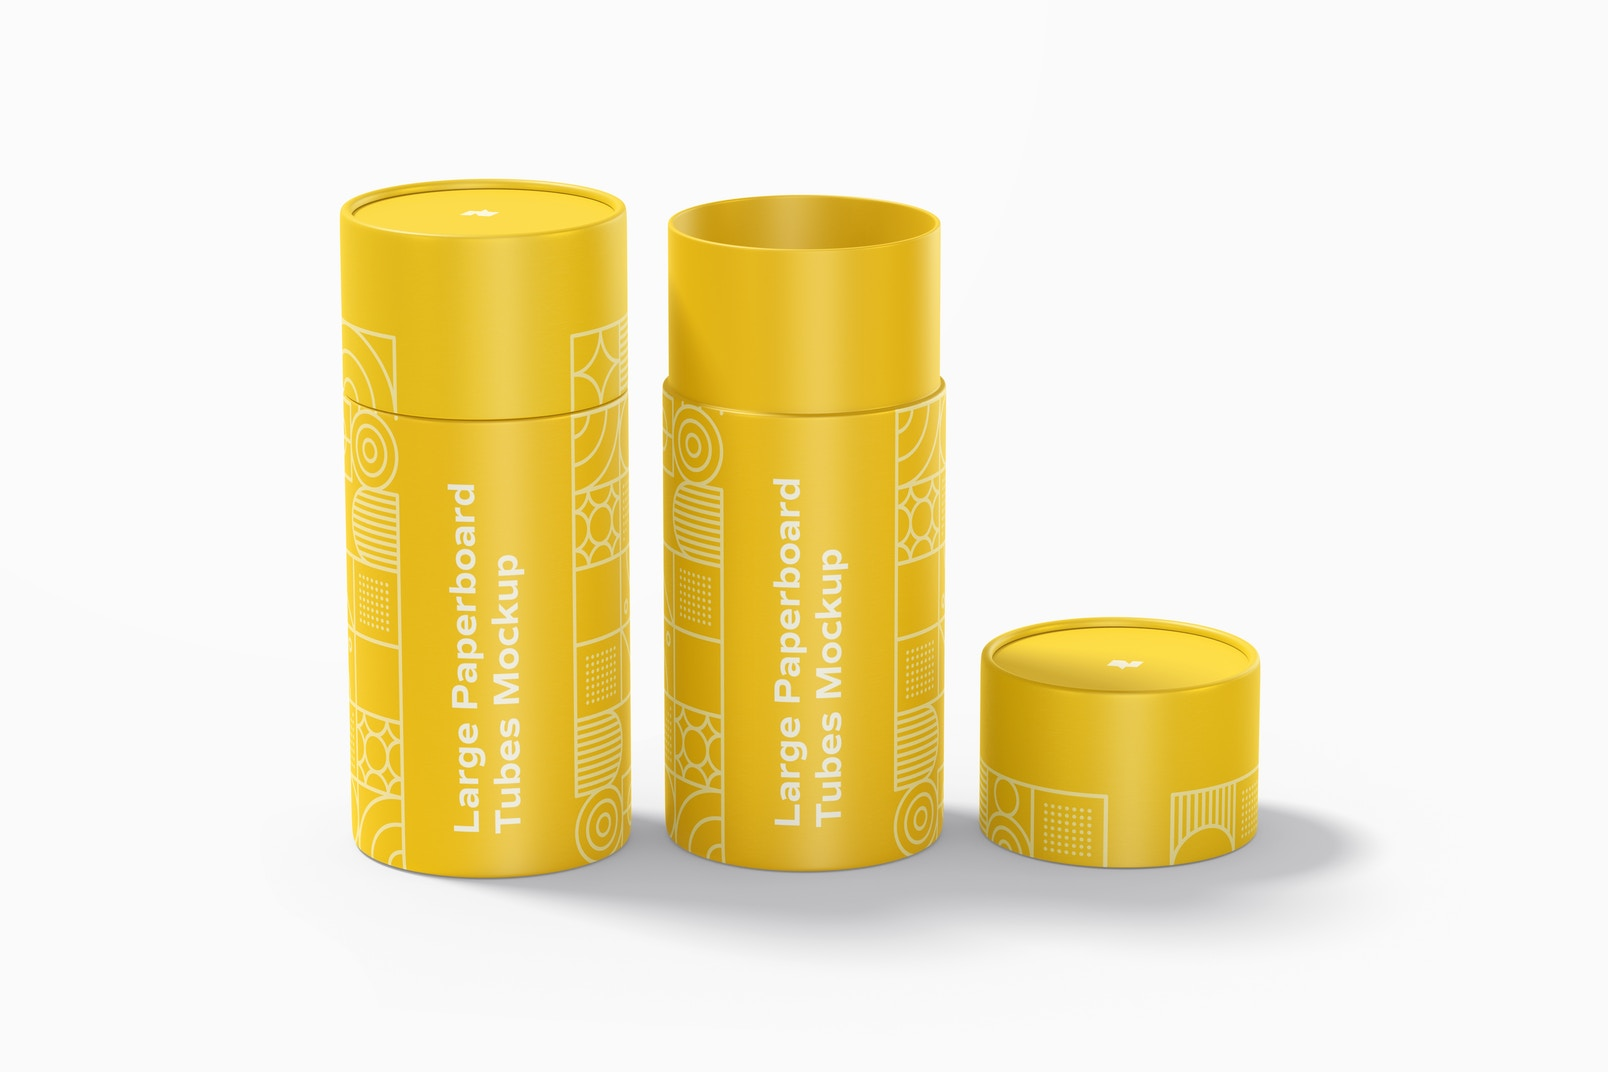 Large Paperboard Tubes Mockup, Opened and Closed